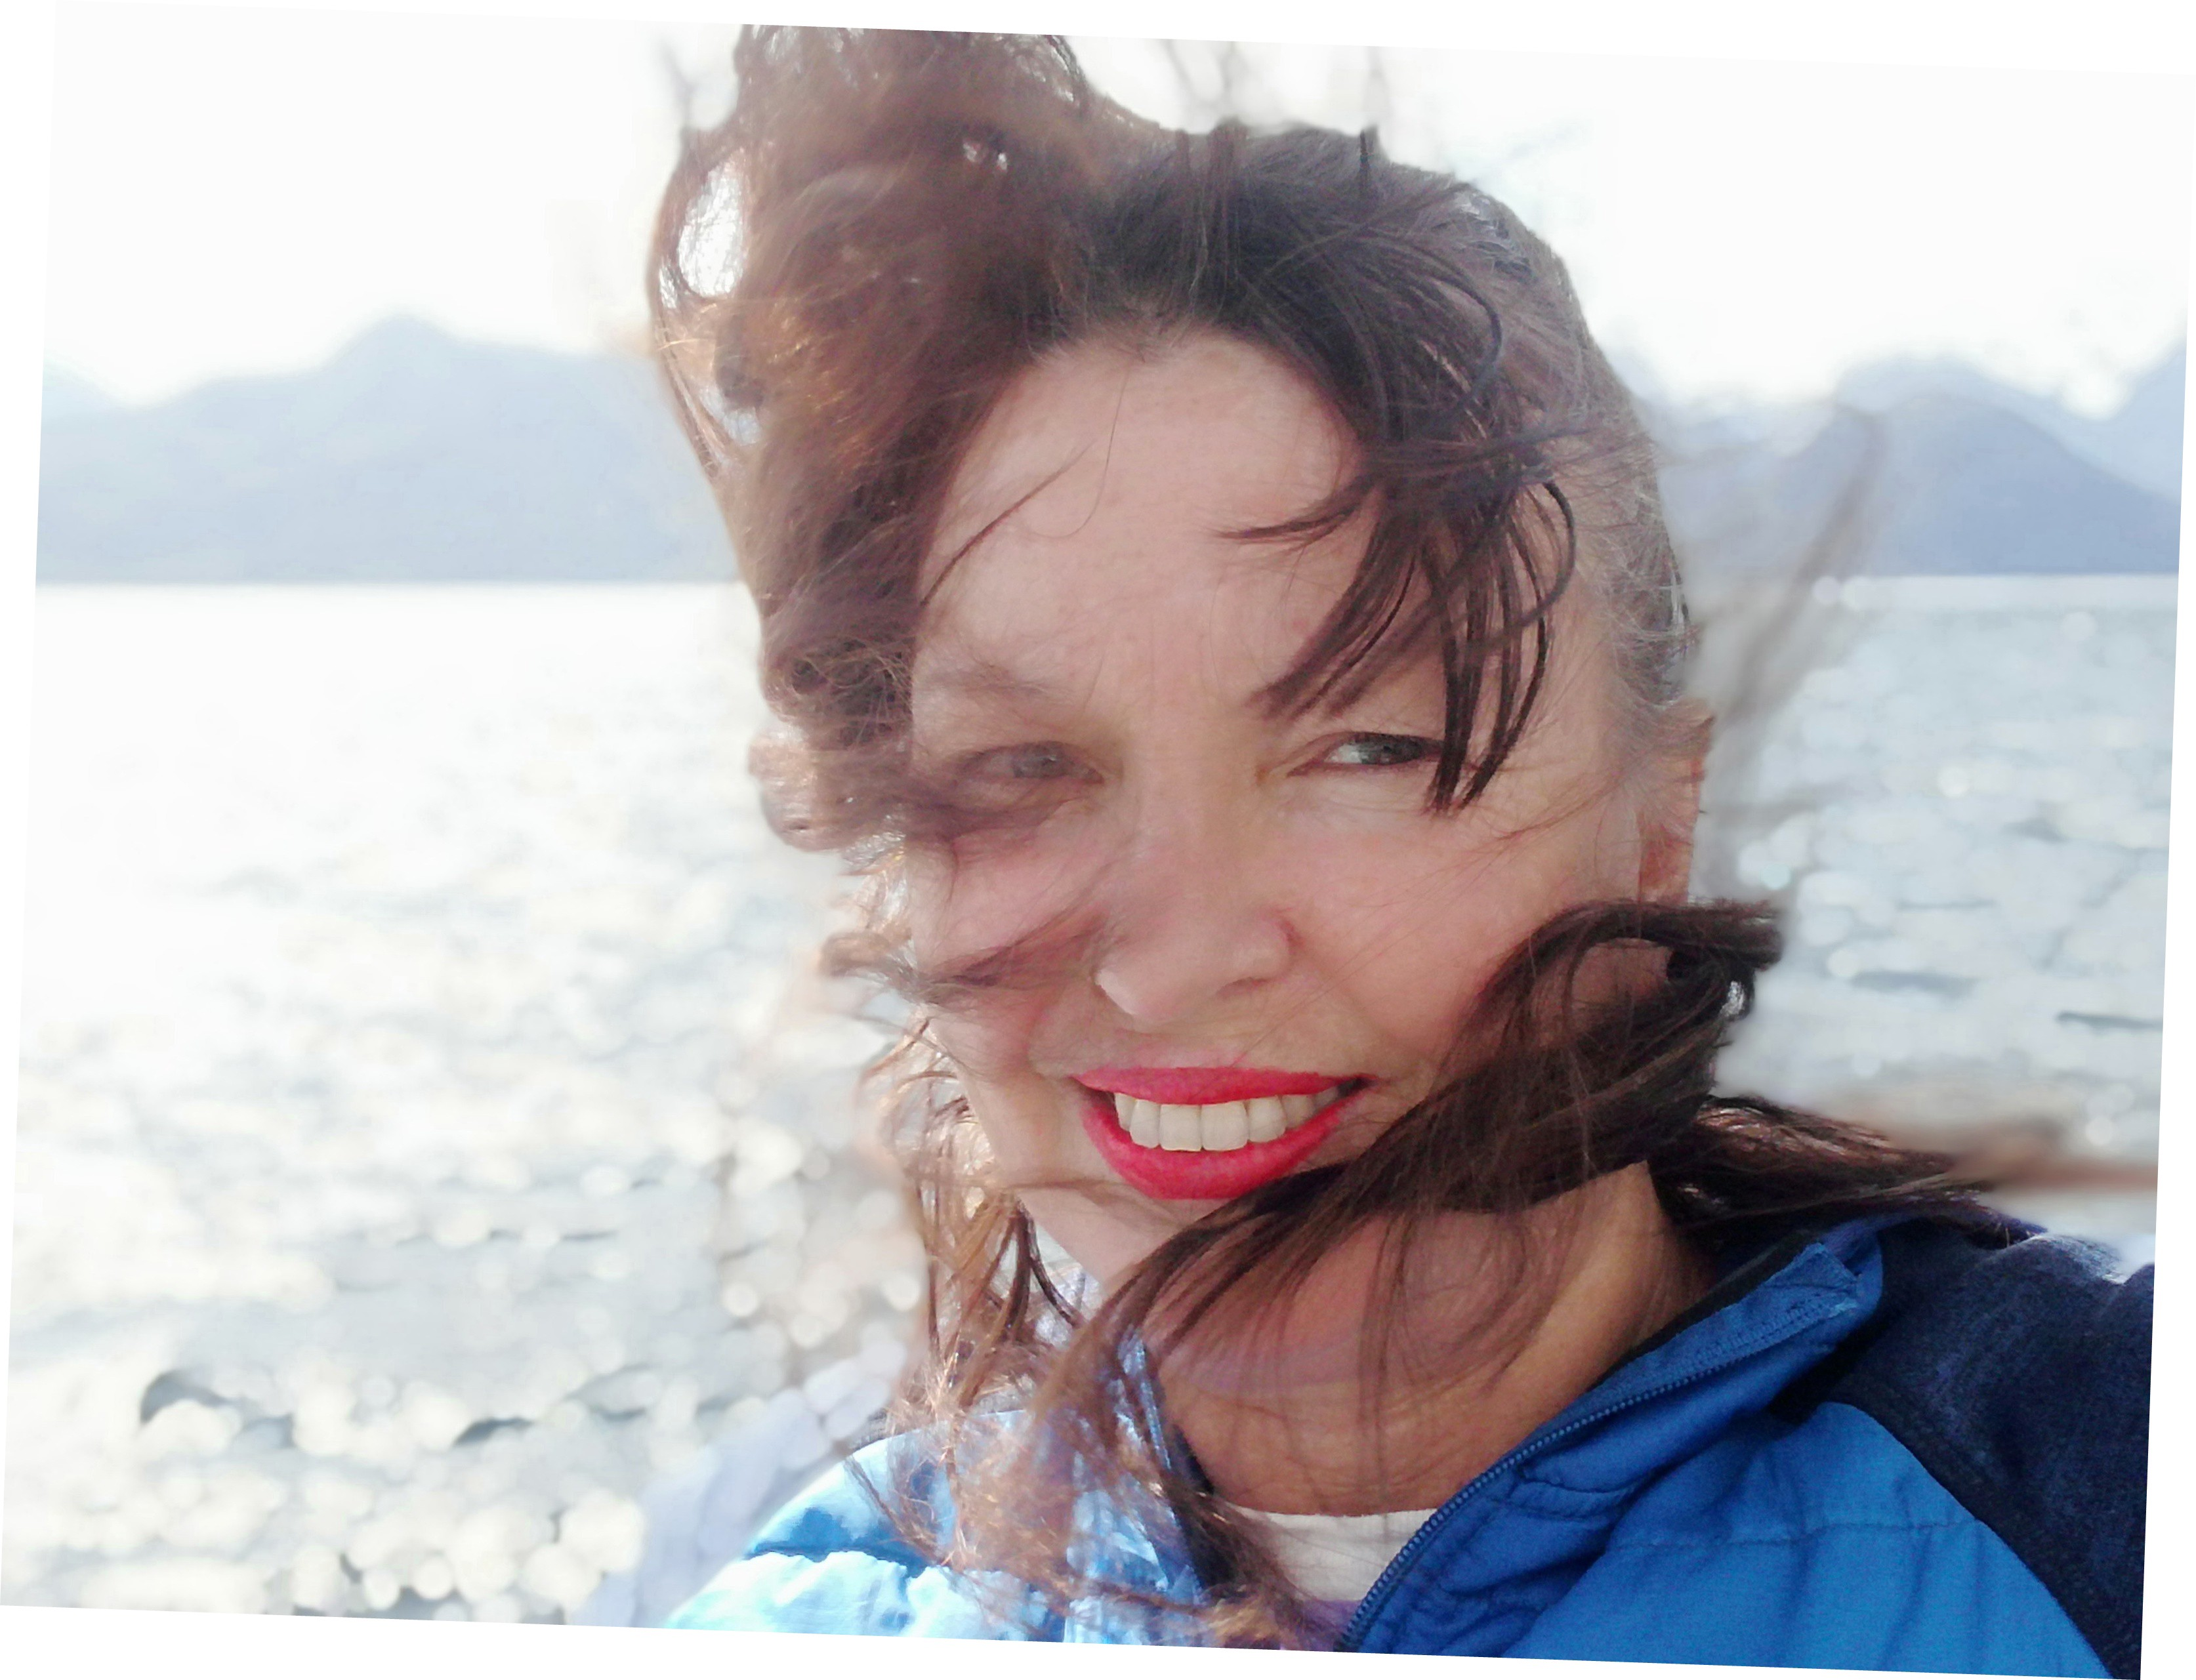 A photo of Mary Jane on a boat on Lake Manapōuri with hair being blown by the wind